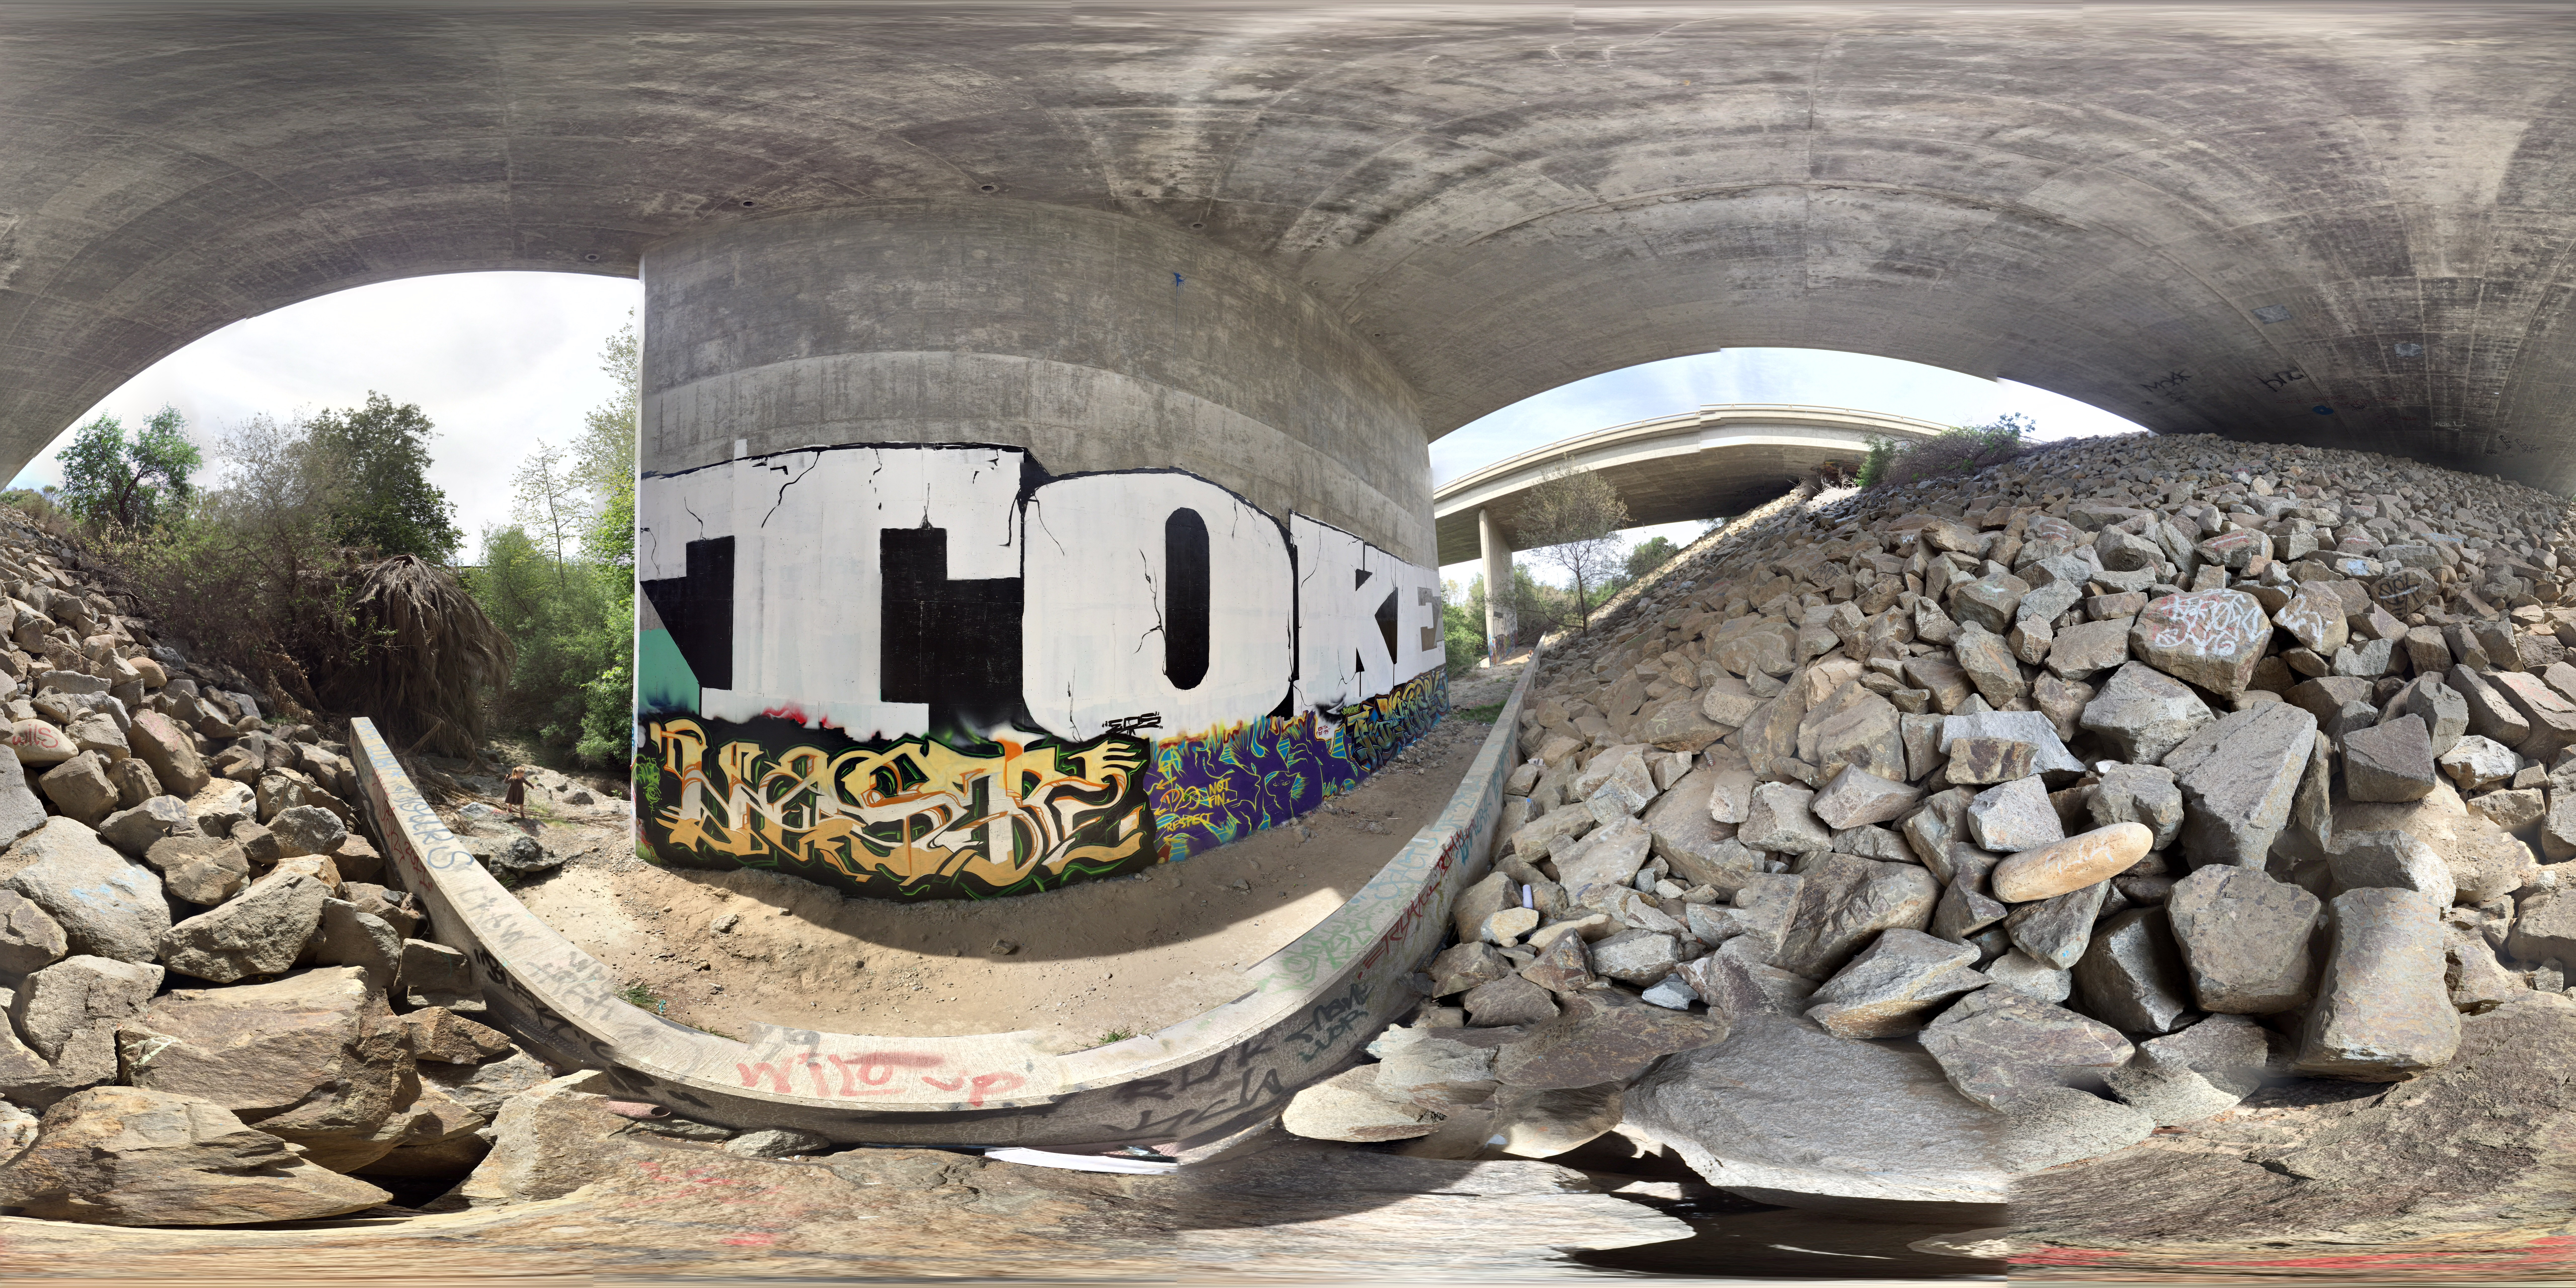 Photo: Trestles Graffiti Gallery